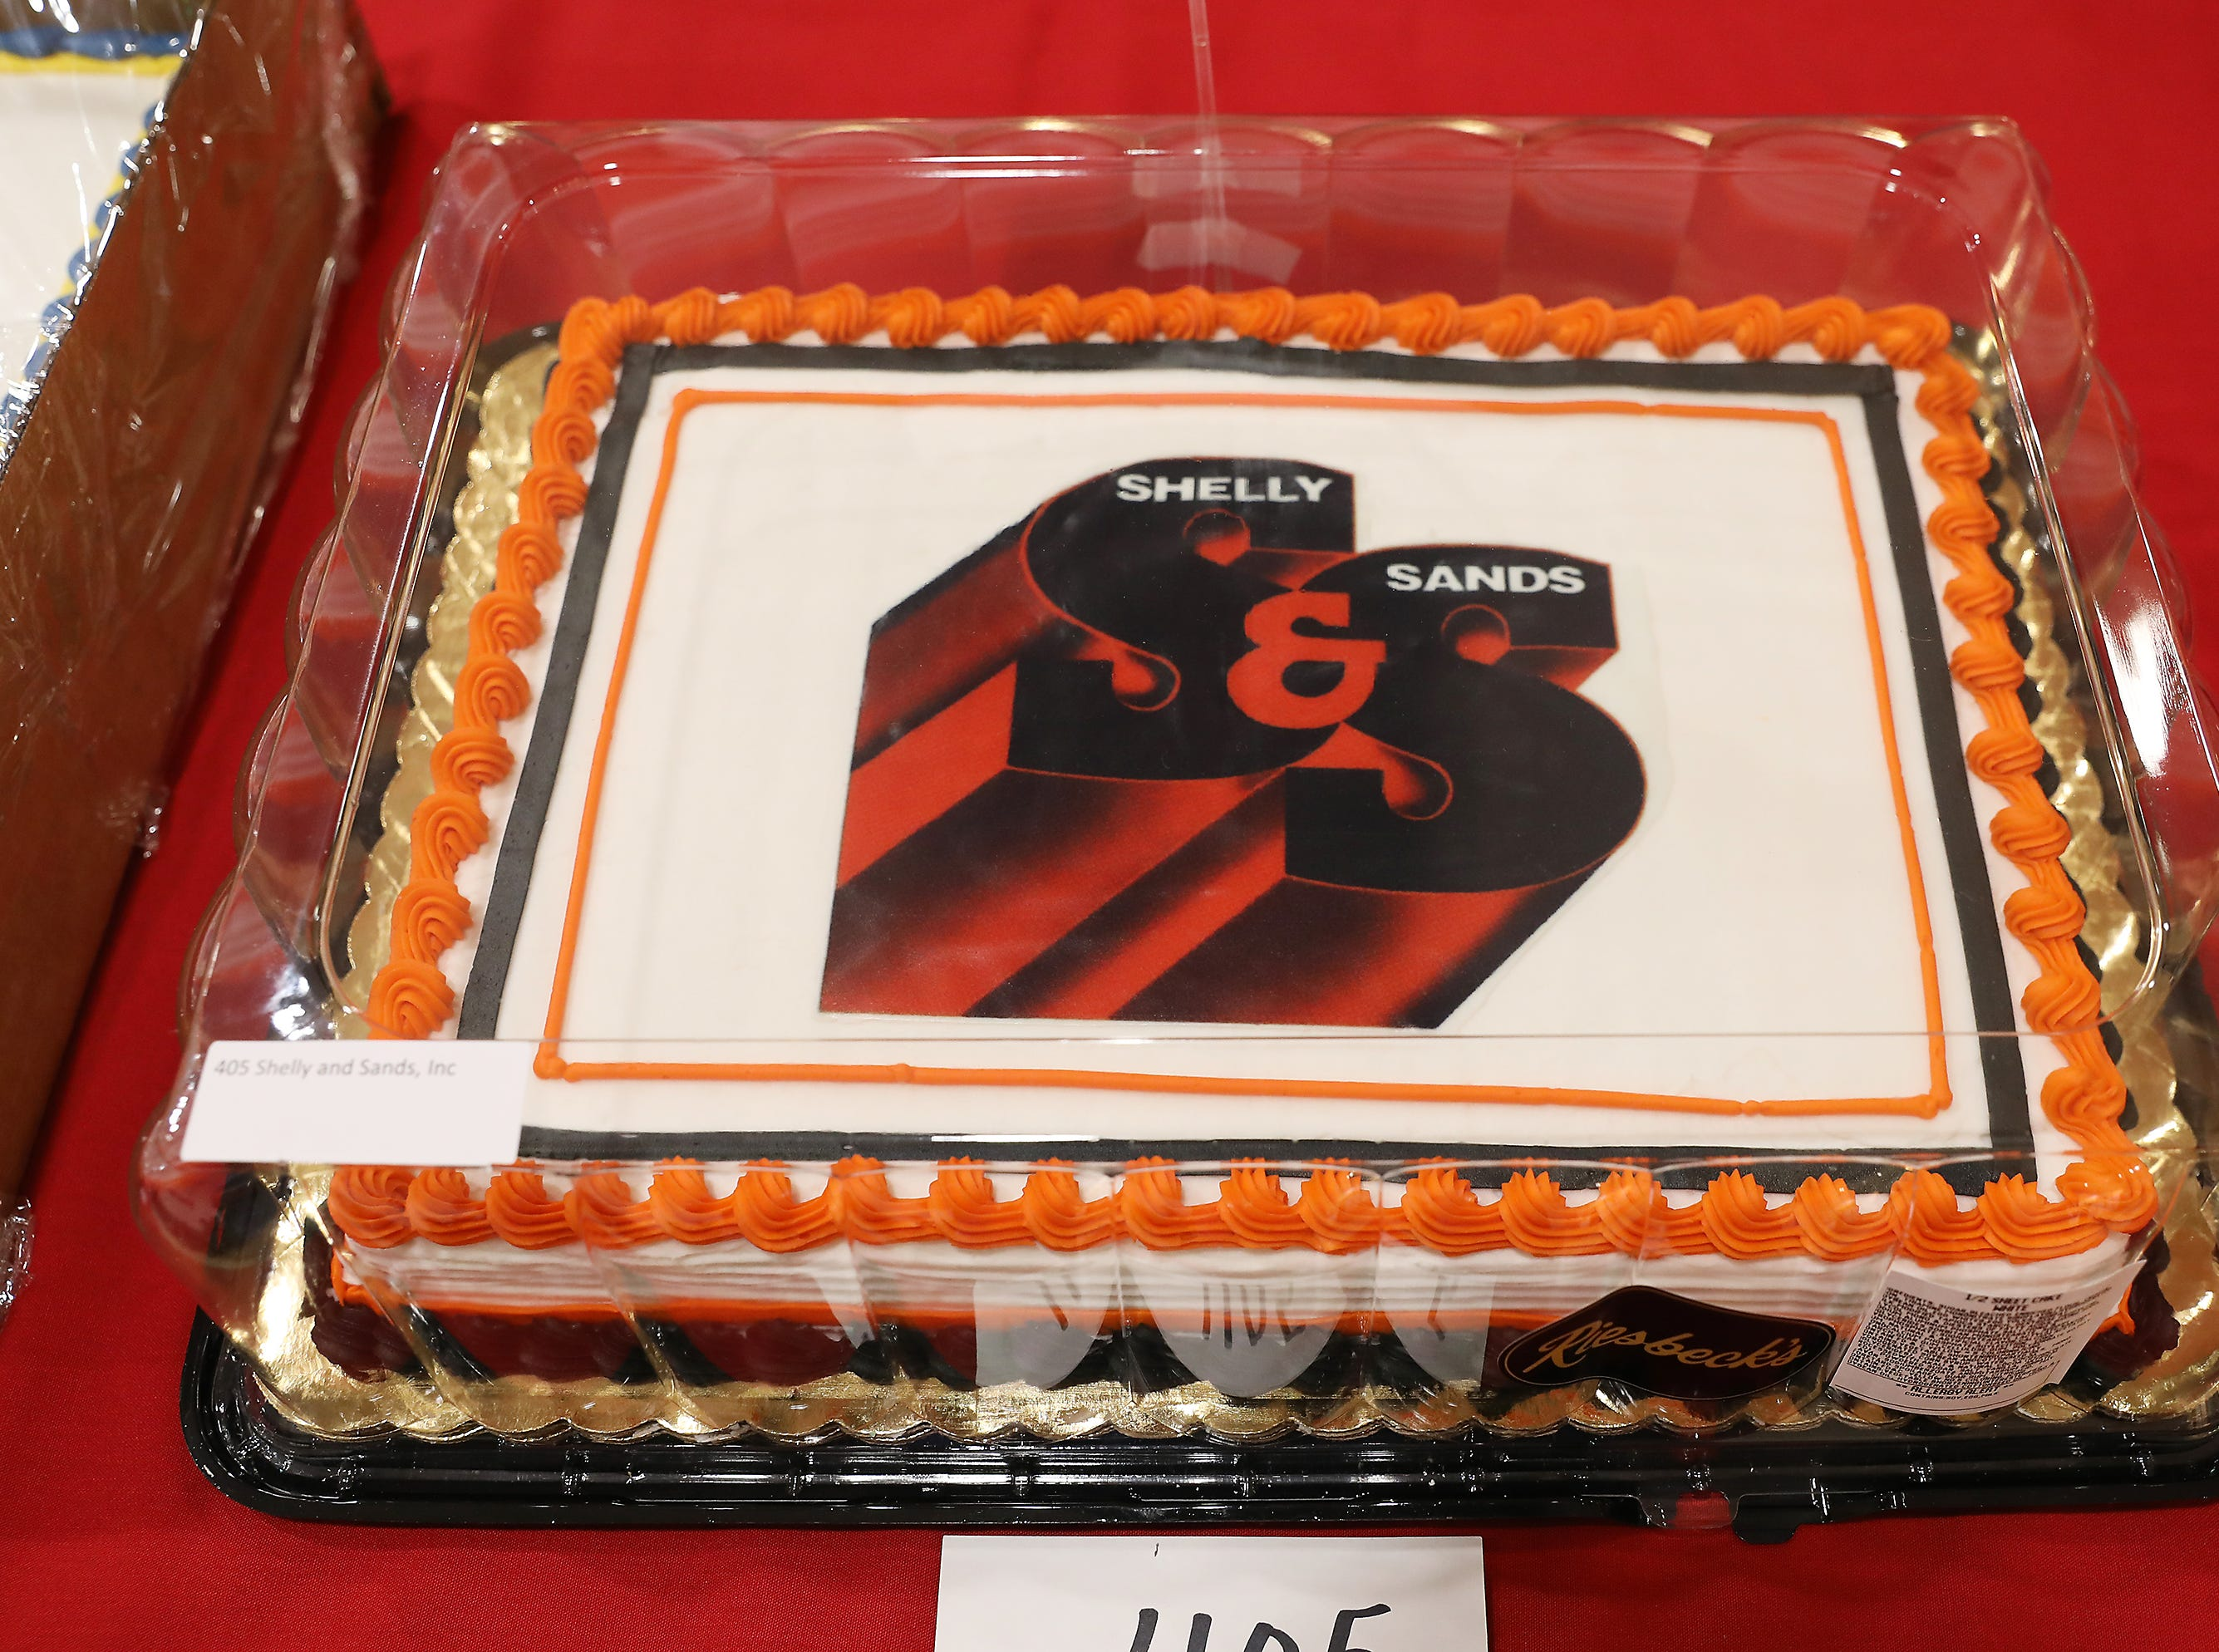 5:30 P.M. Friday cake 405 Shelly and Sands - $100 gift cards to The Barn, Muddy Miser's, Longhorn, Eaglesticks, Adornettos